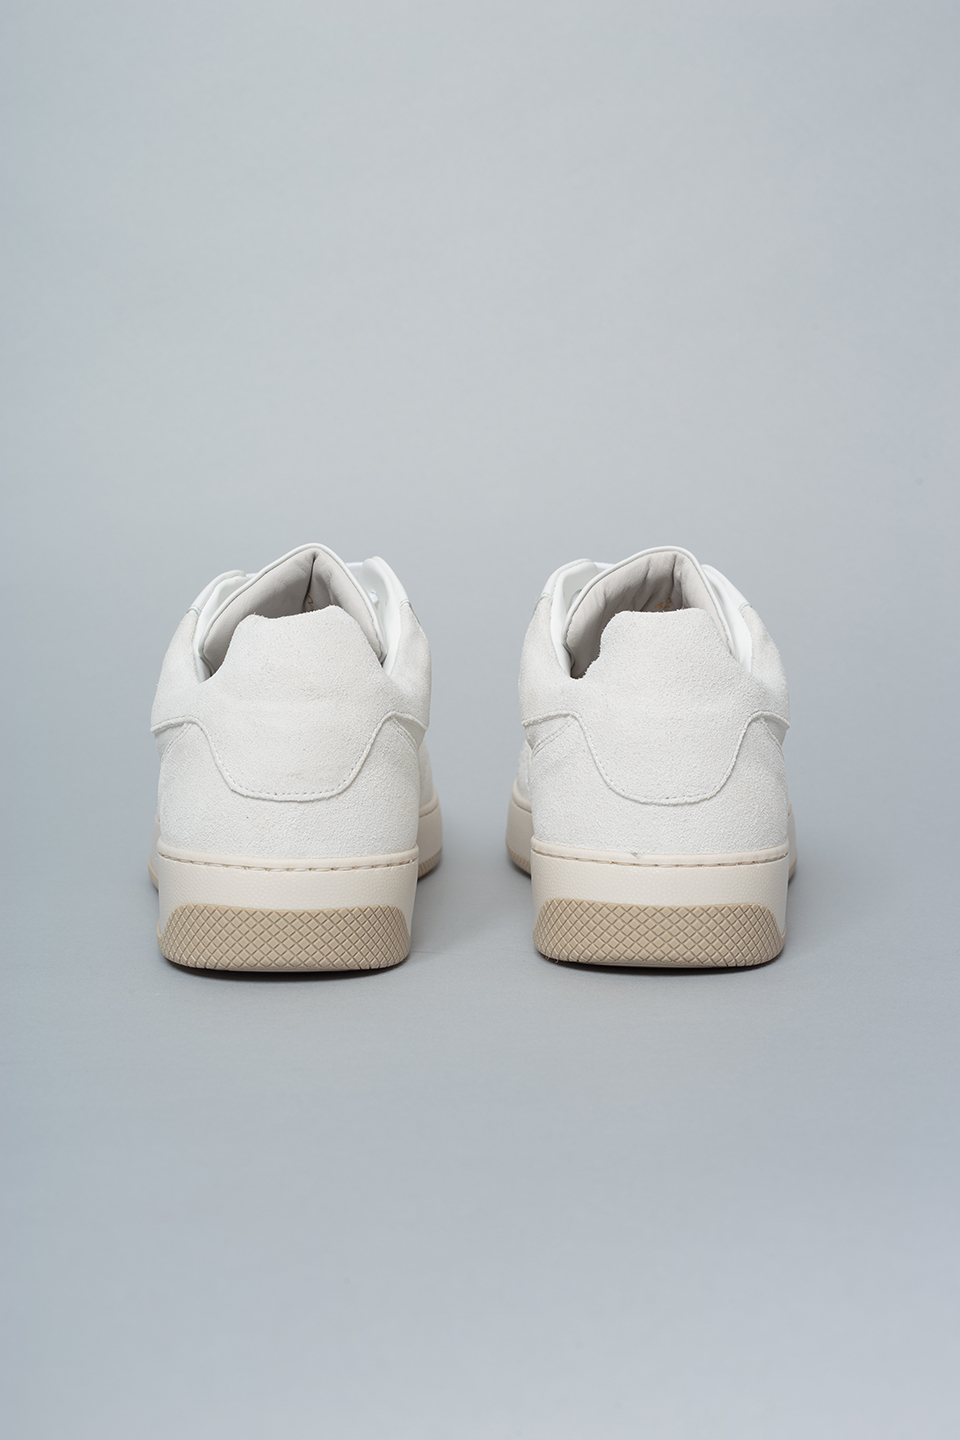 CPH350M calf white - alternative 4